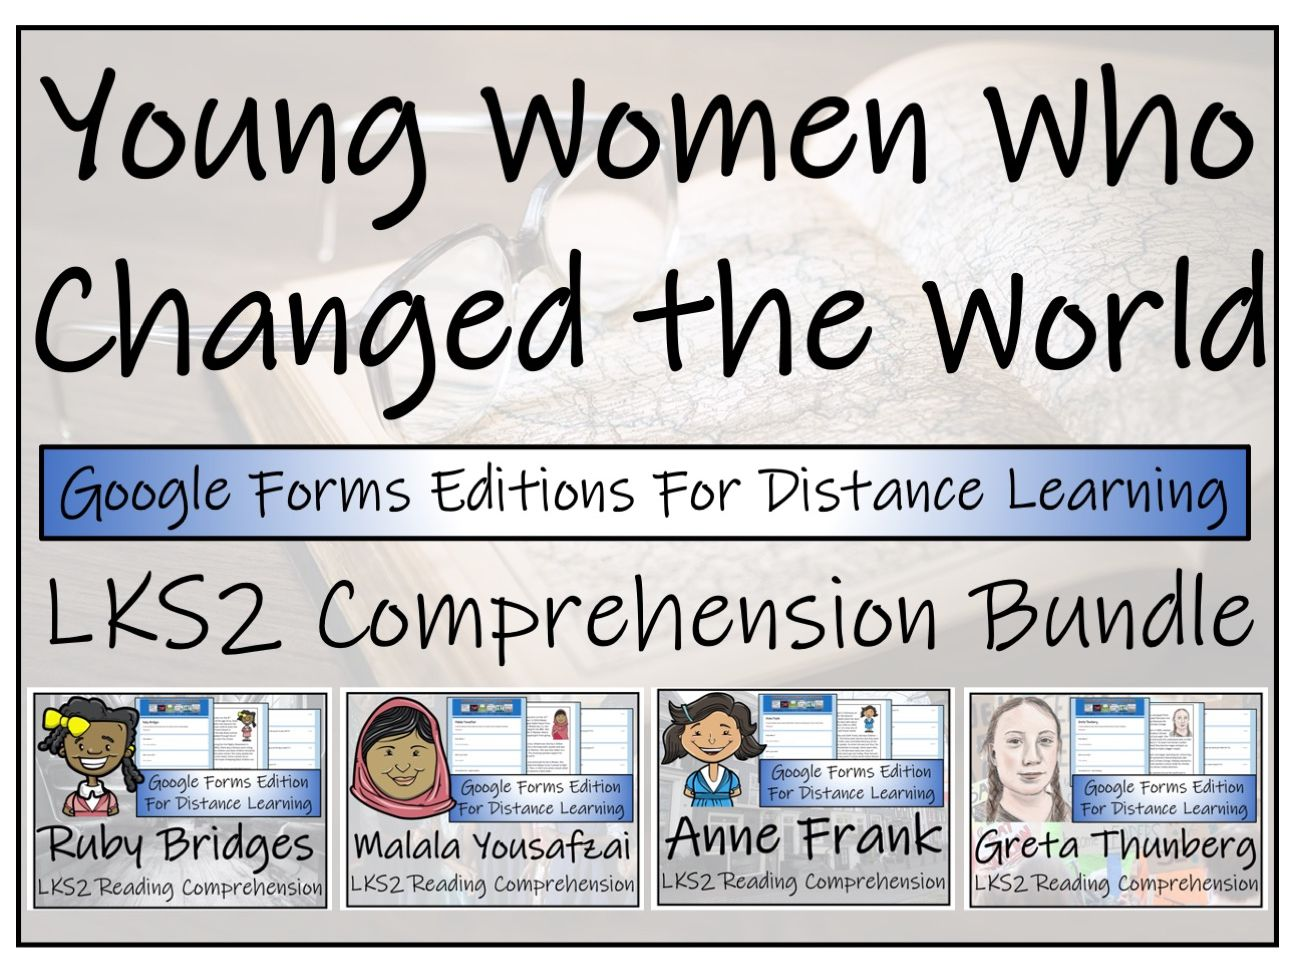 LKS2 Young Women Who Changed the World Reading Comprehension & Distance Learning Bundle